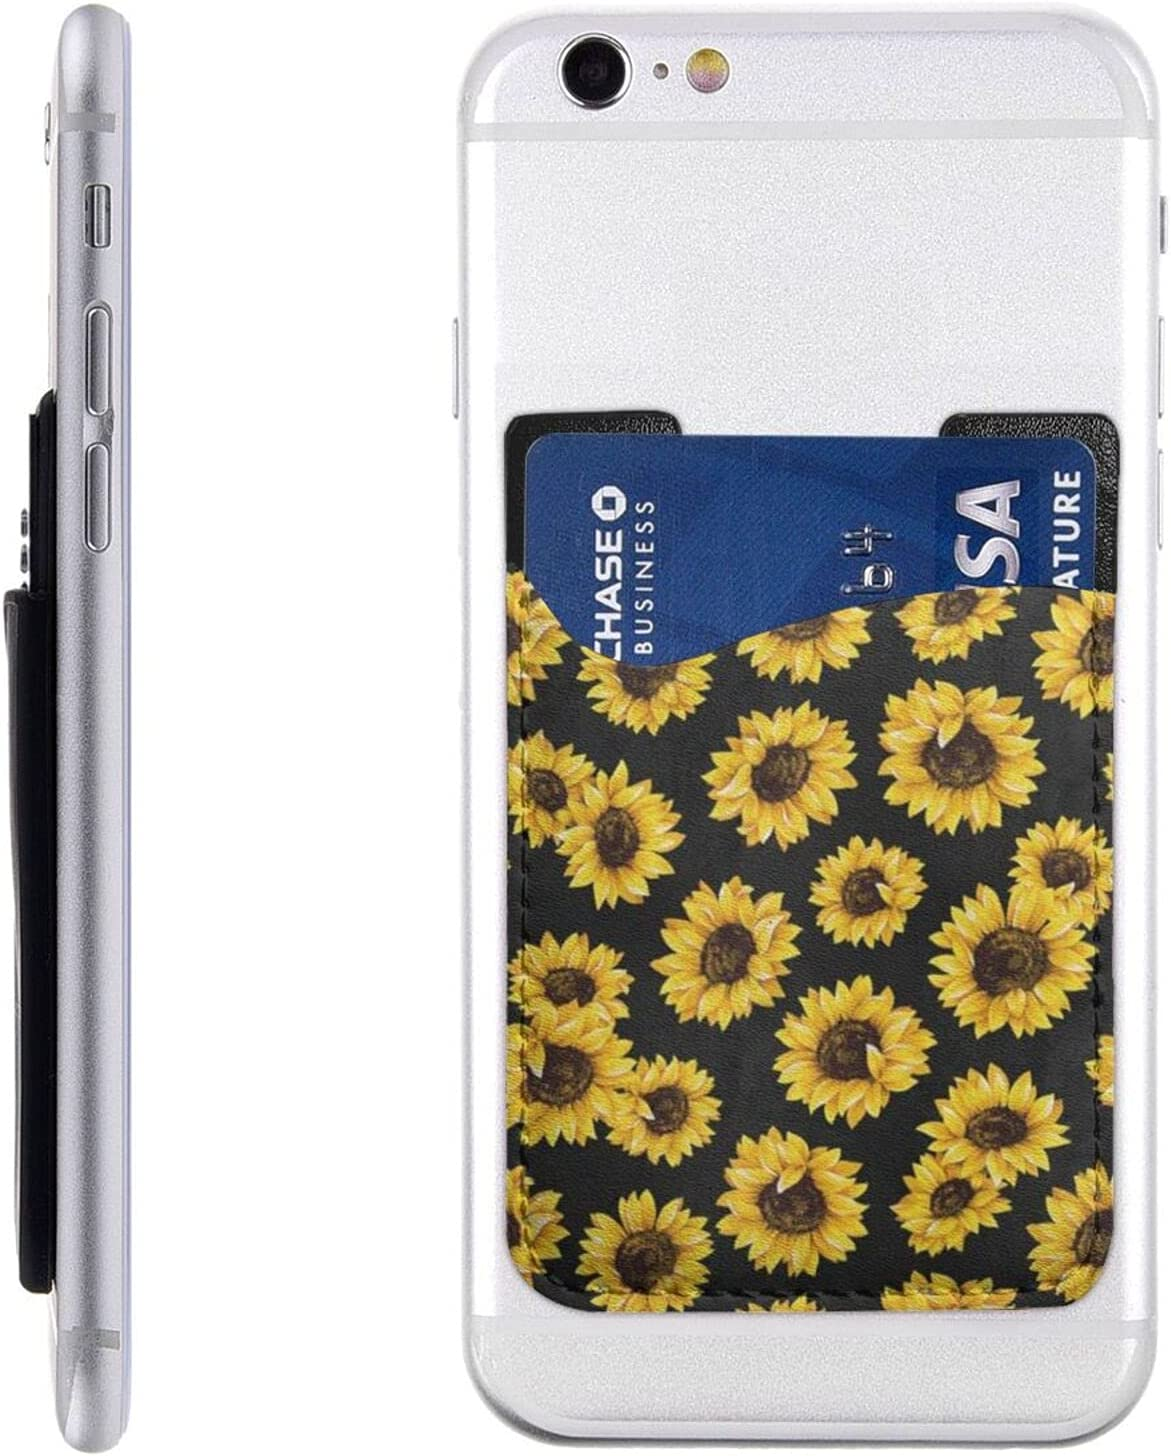 Golden Sunflowers Phone Card Holder Stick On Wal Brand Cheap Sale Venue Trust Cell